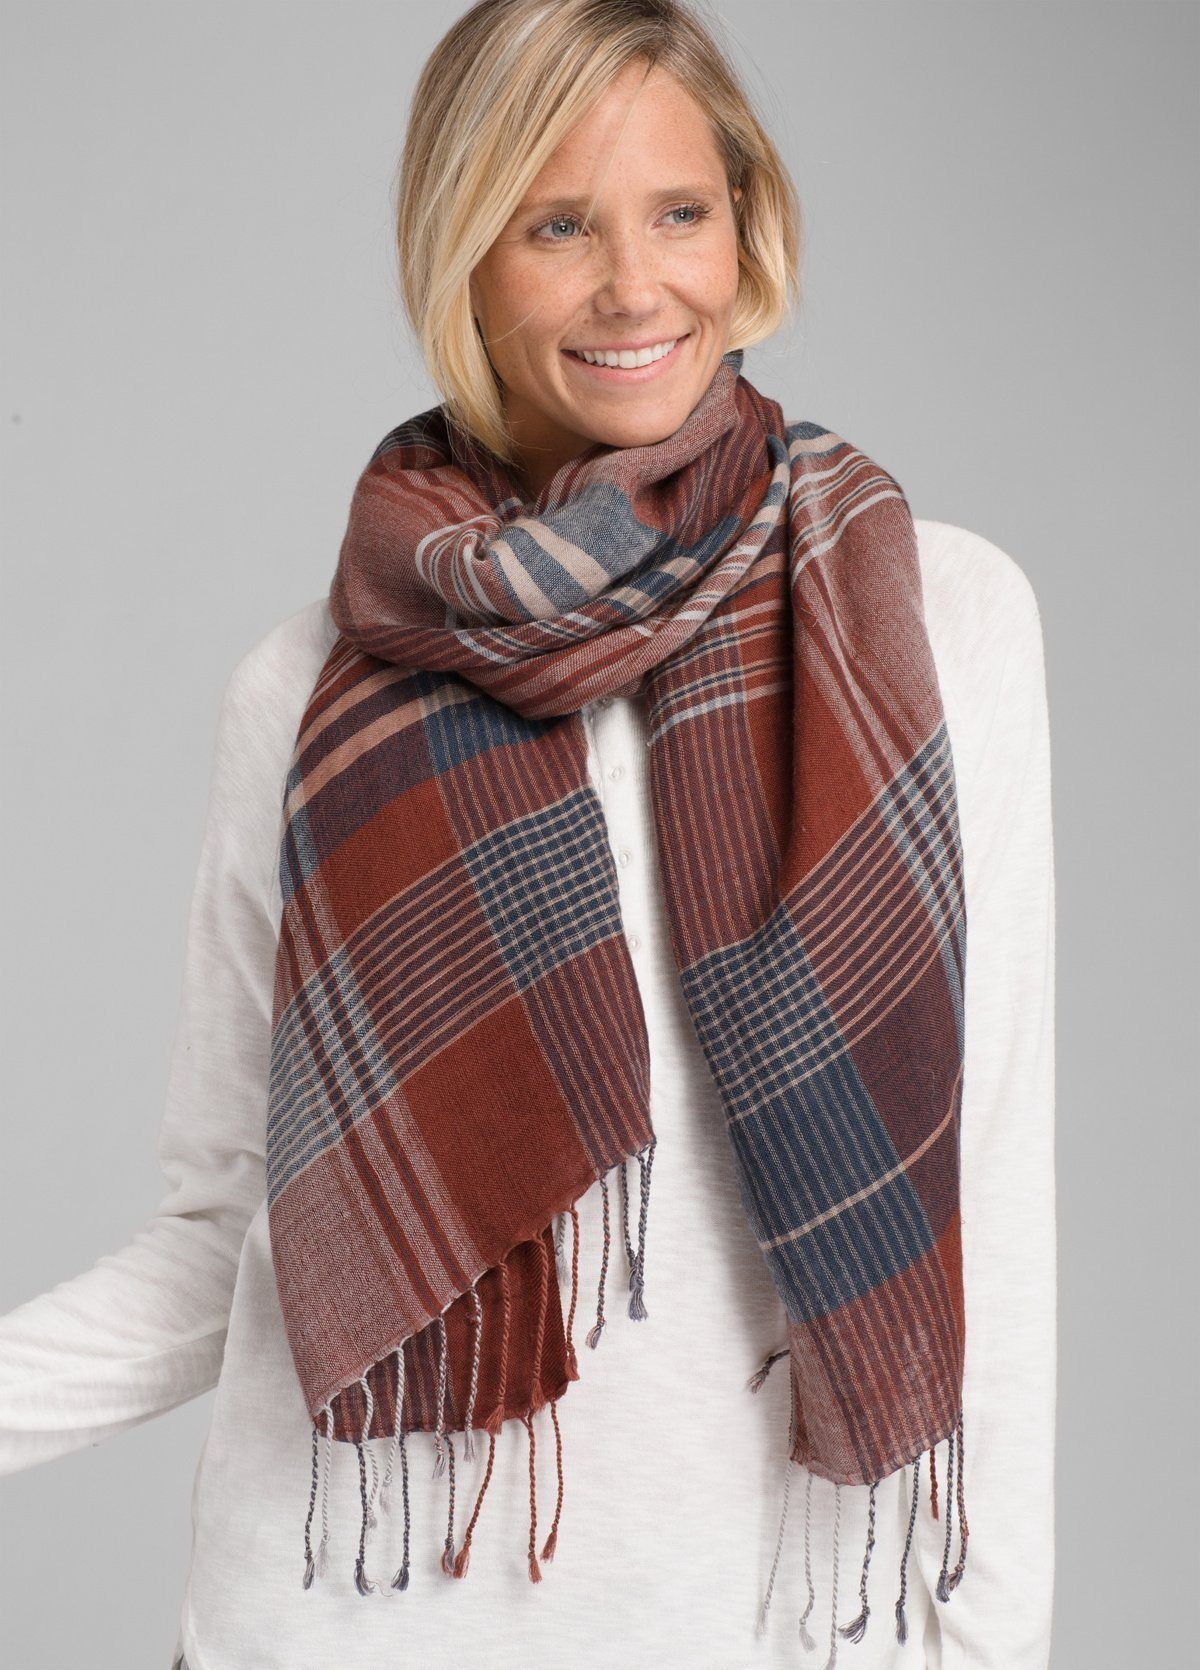 PrAna - W's Skylan Scarf - Wool & TENCEL™ Modal - Weekendbee - sustainable sportswear